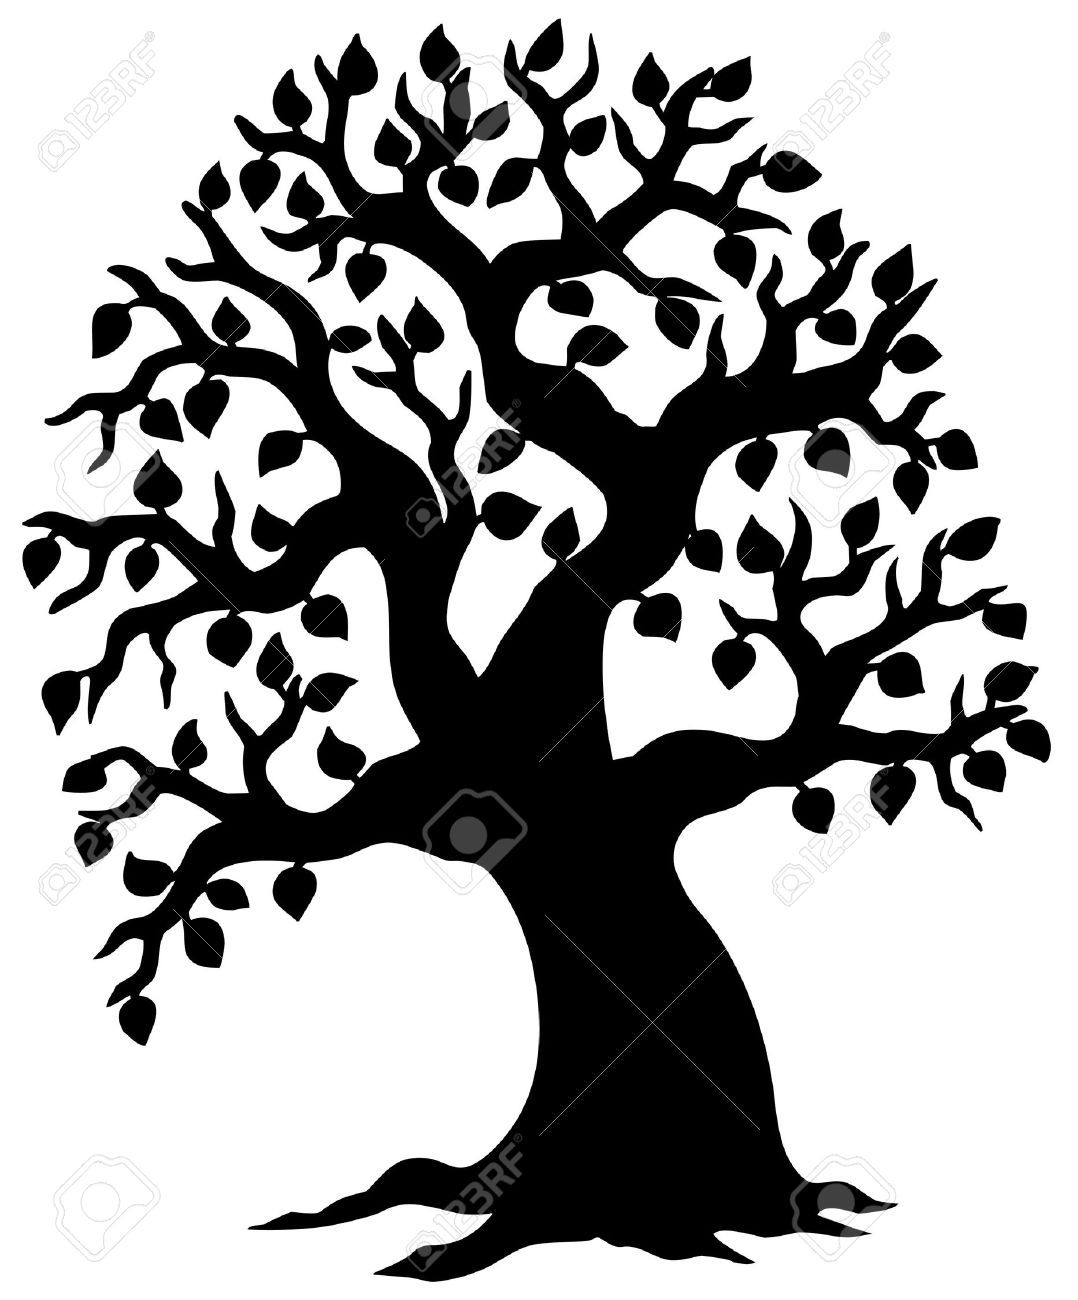 Big Leafy Tree Silhouette - Illustration. Royalty Free Cliparts ...